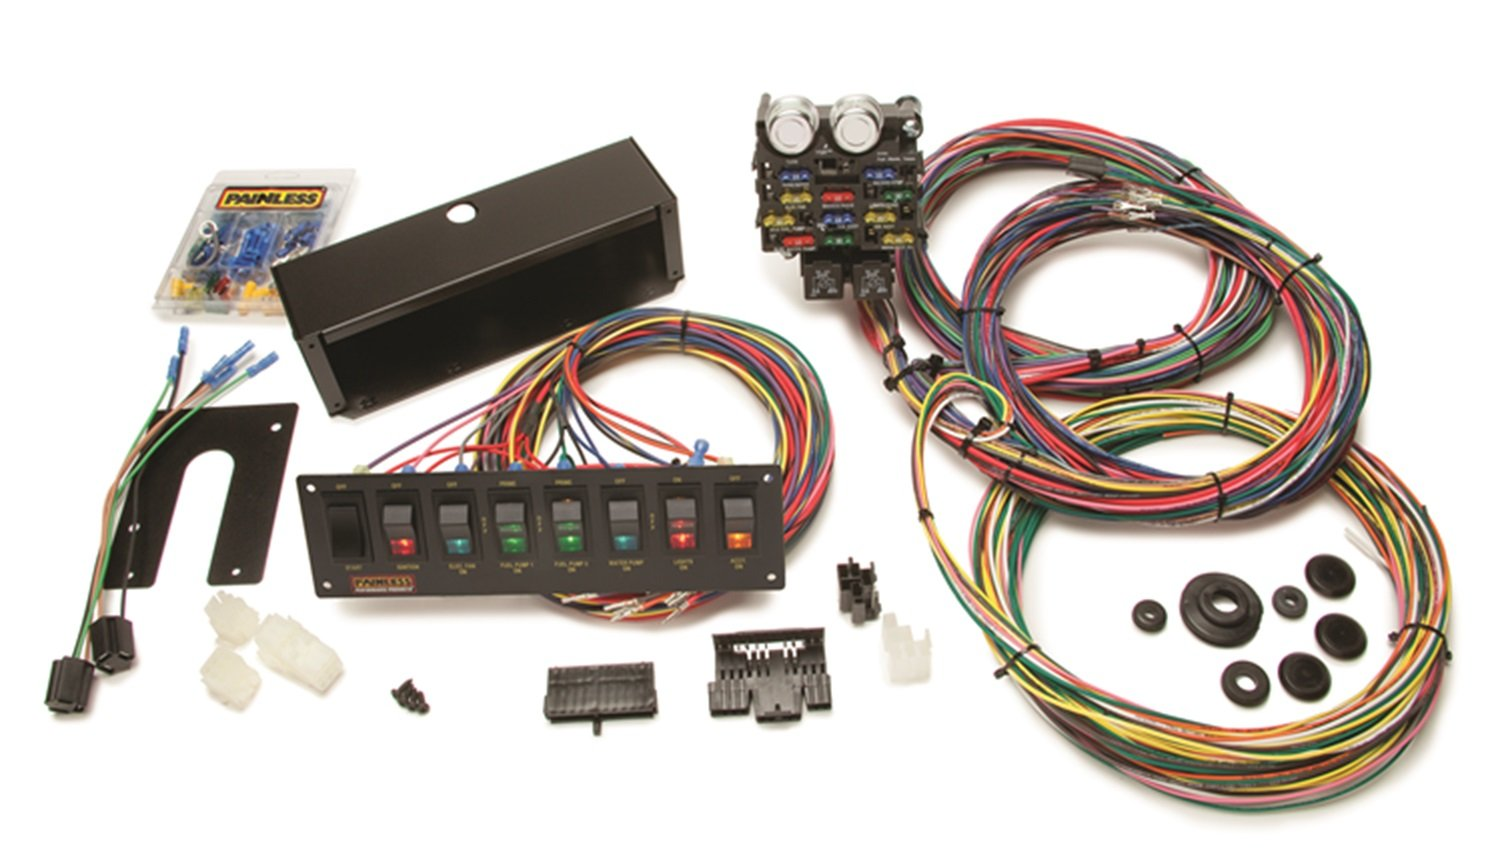 71BqRBAaHEL._SL1500_ painless wiring harness 5 0 engine swap wiring harness \u2022 free  at crackthecode.co